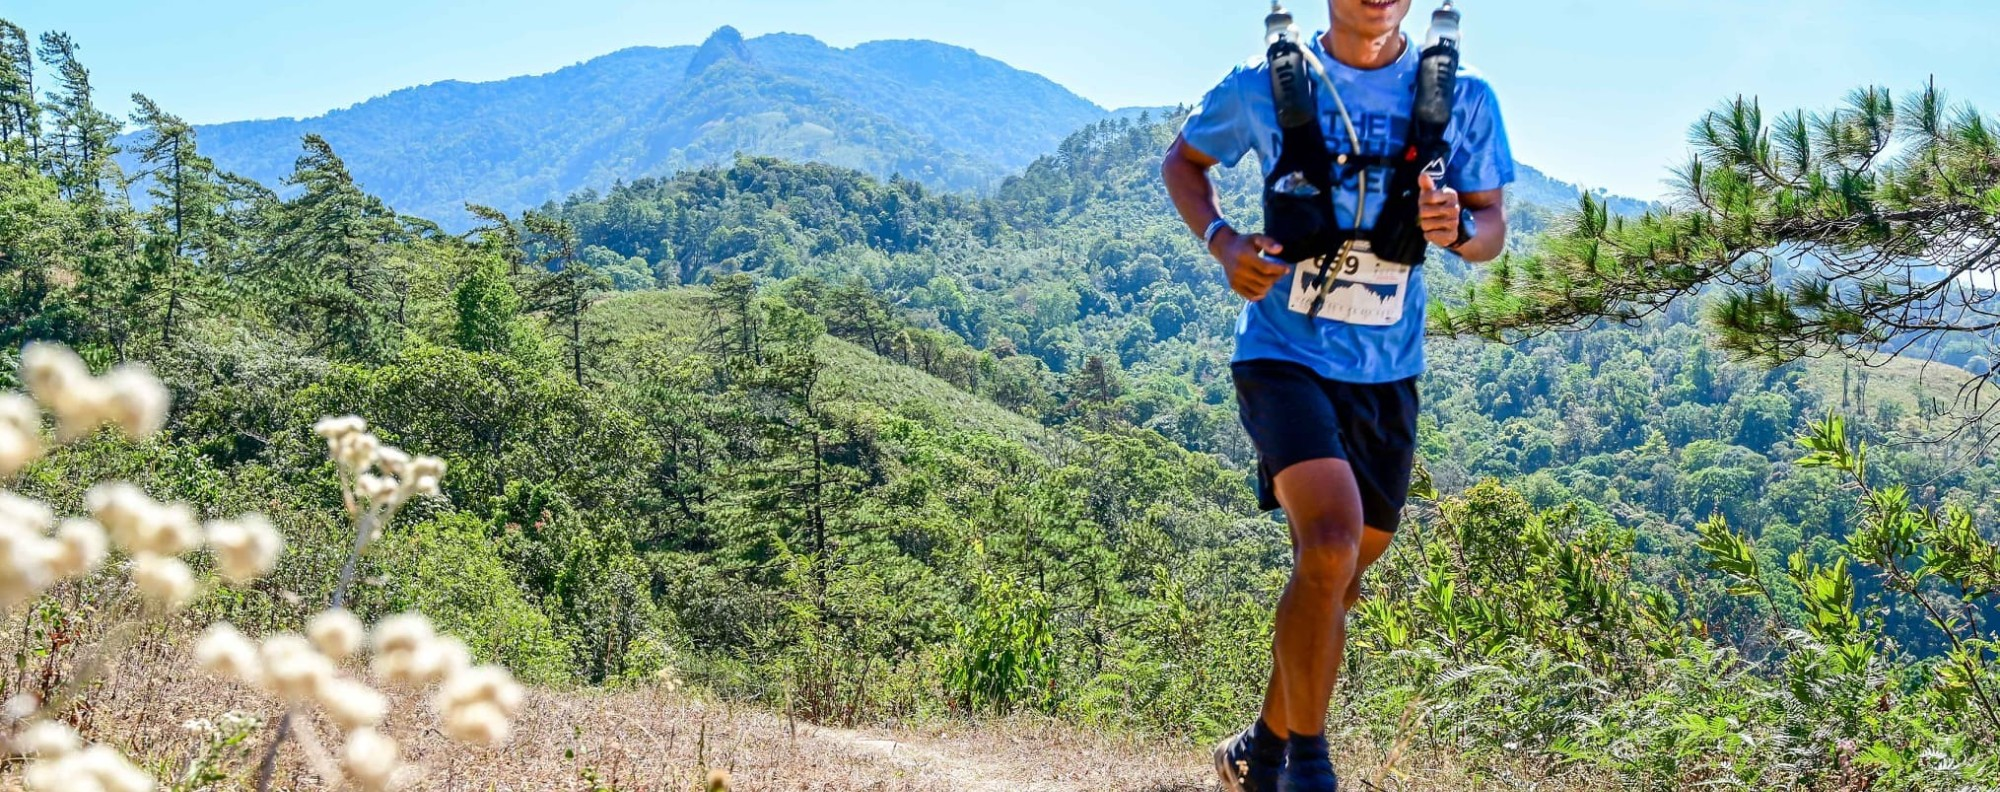 Jay Jantaraboon, one of Thailand's top trail runners, during the test event in February. Photo: Thailand by UTMB